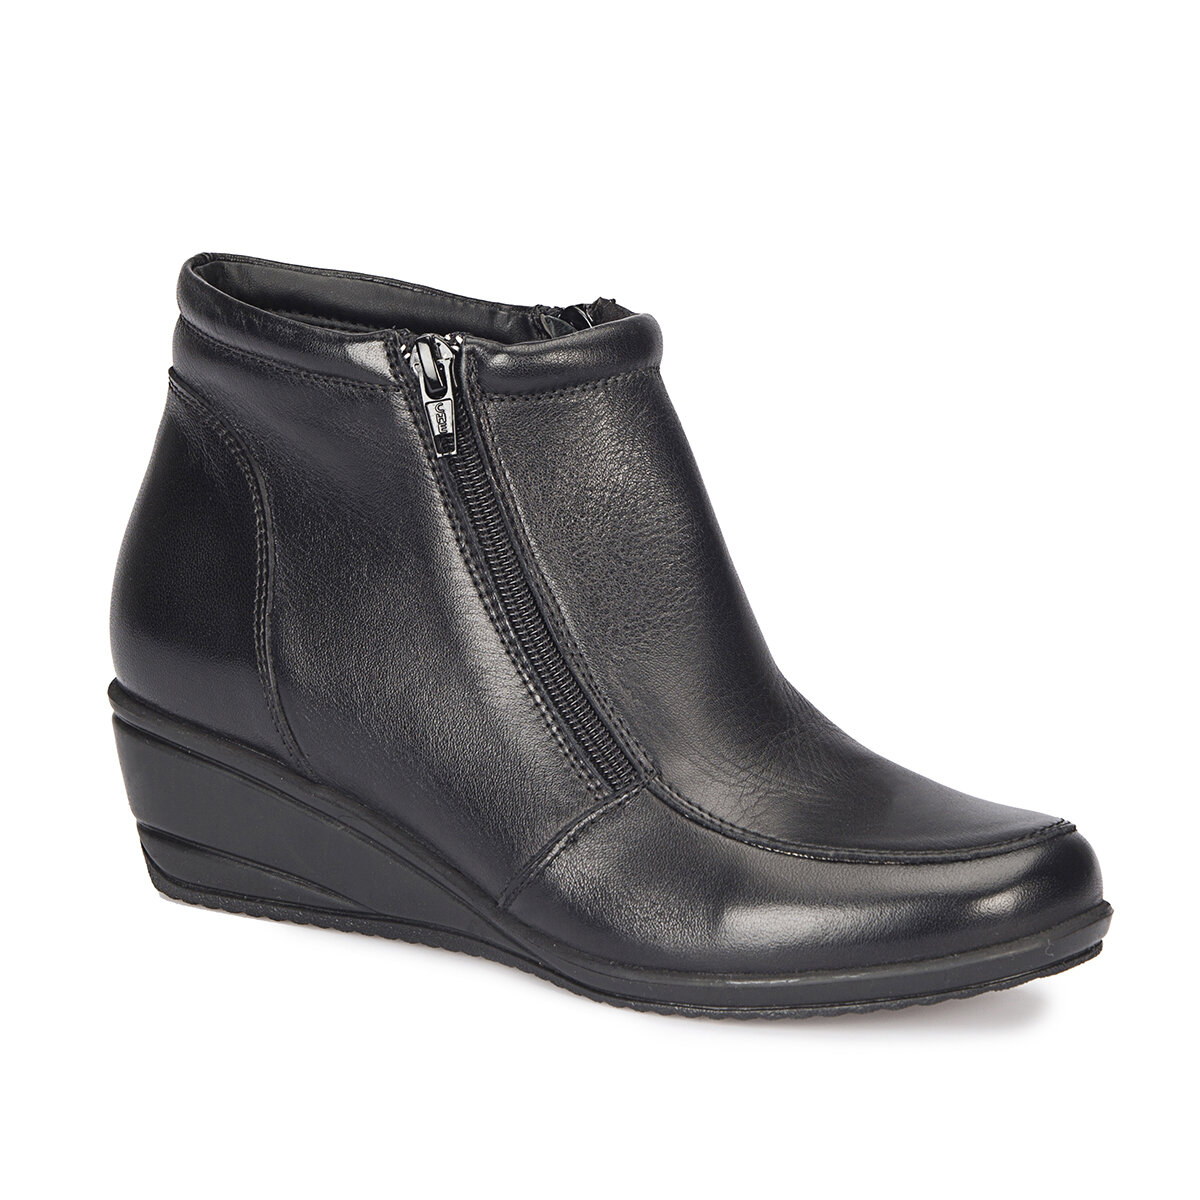 FLO 72.110150.Z Black Women Boots Polaris 5 Point